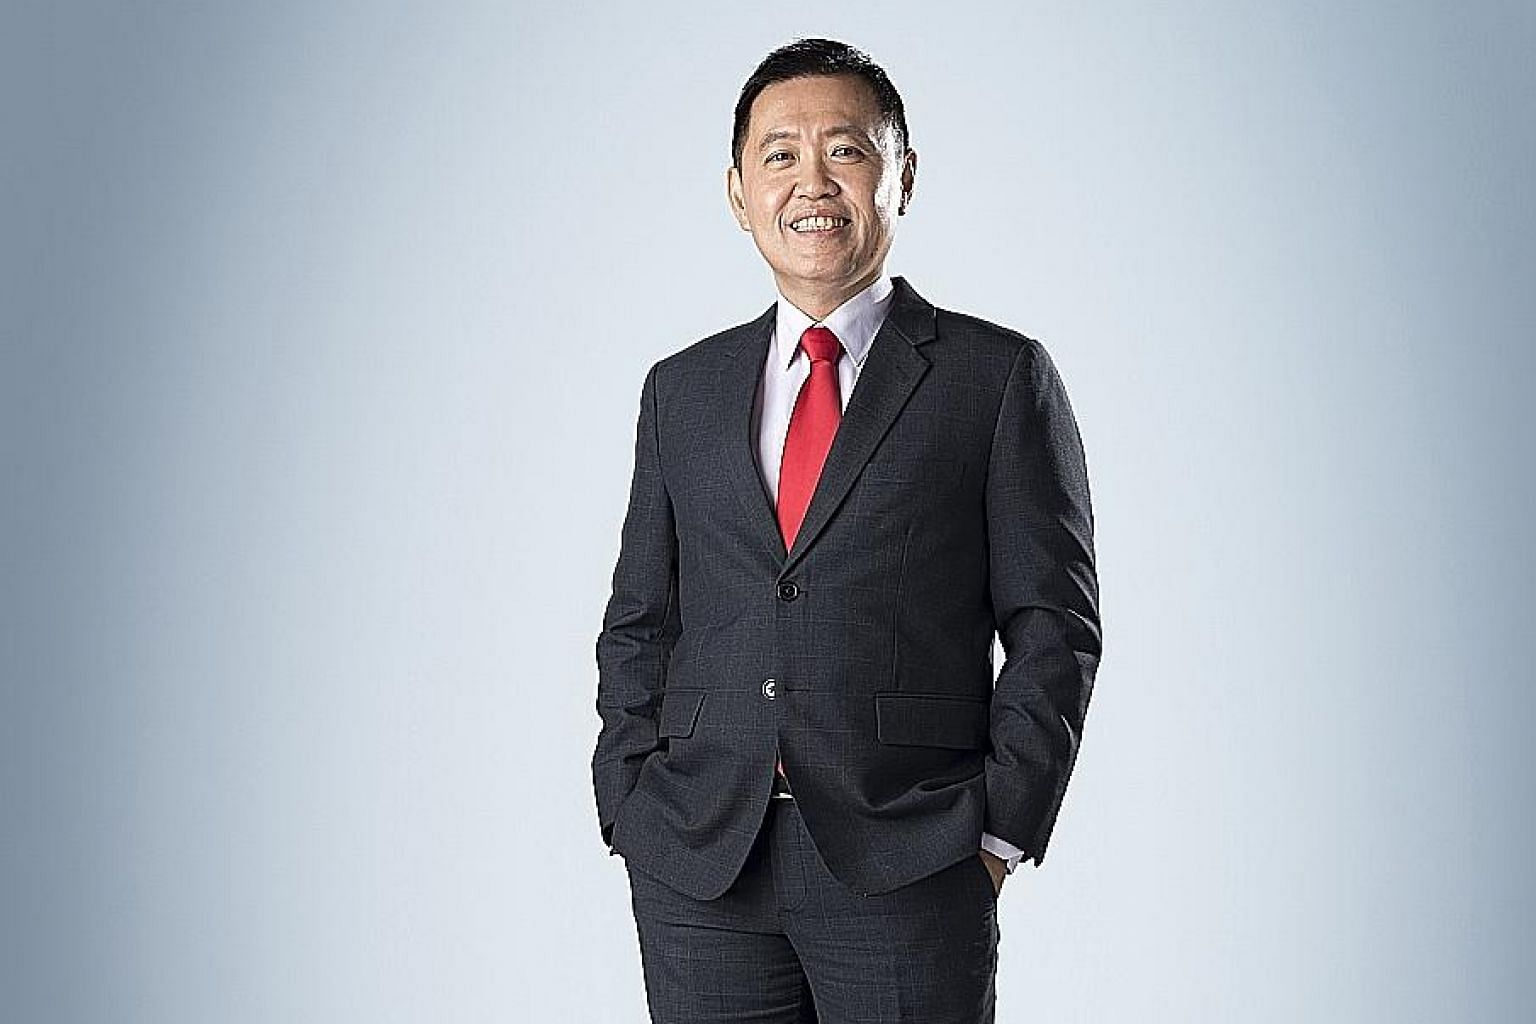 DBS Bank's Mr Yeo Kee Yan says that knowing a specific analyst's style can help one better interpret the research report he puts up.